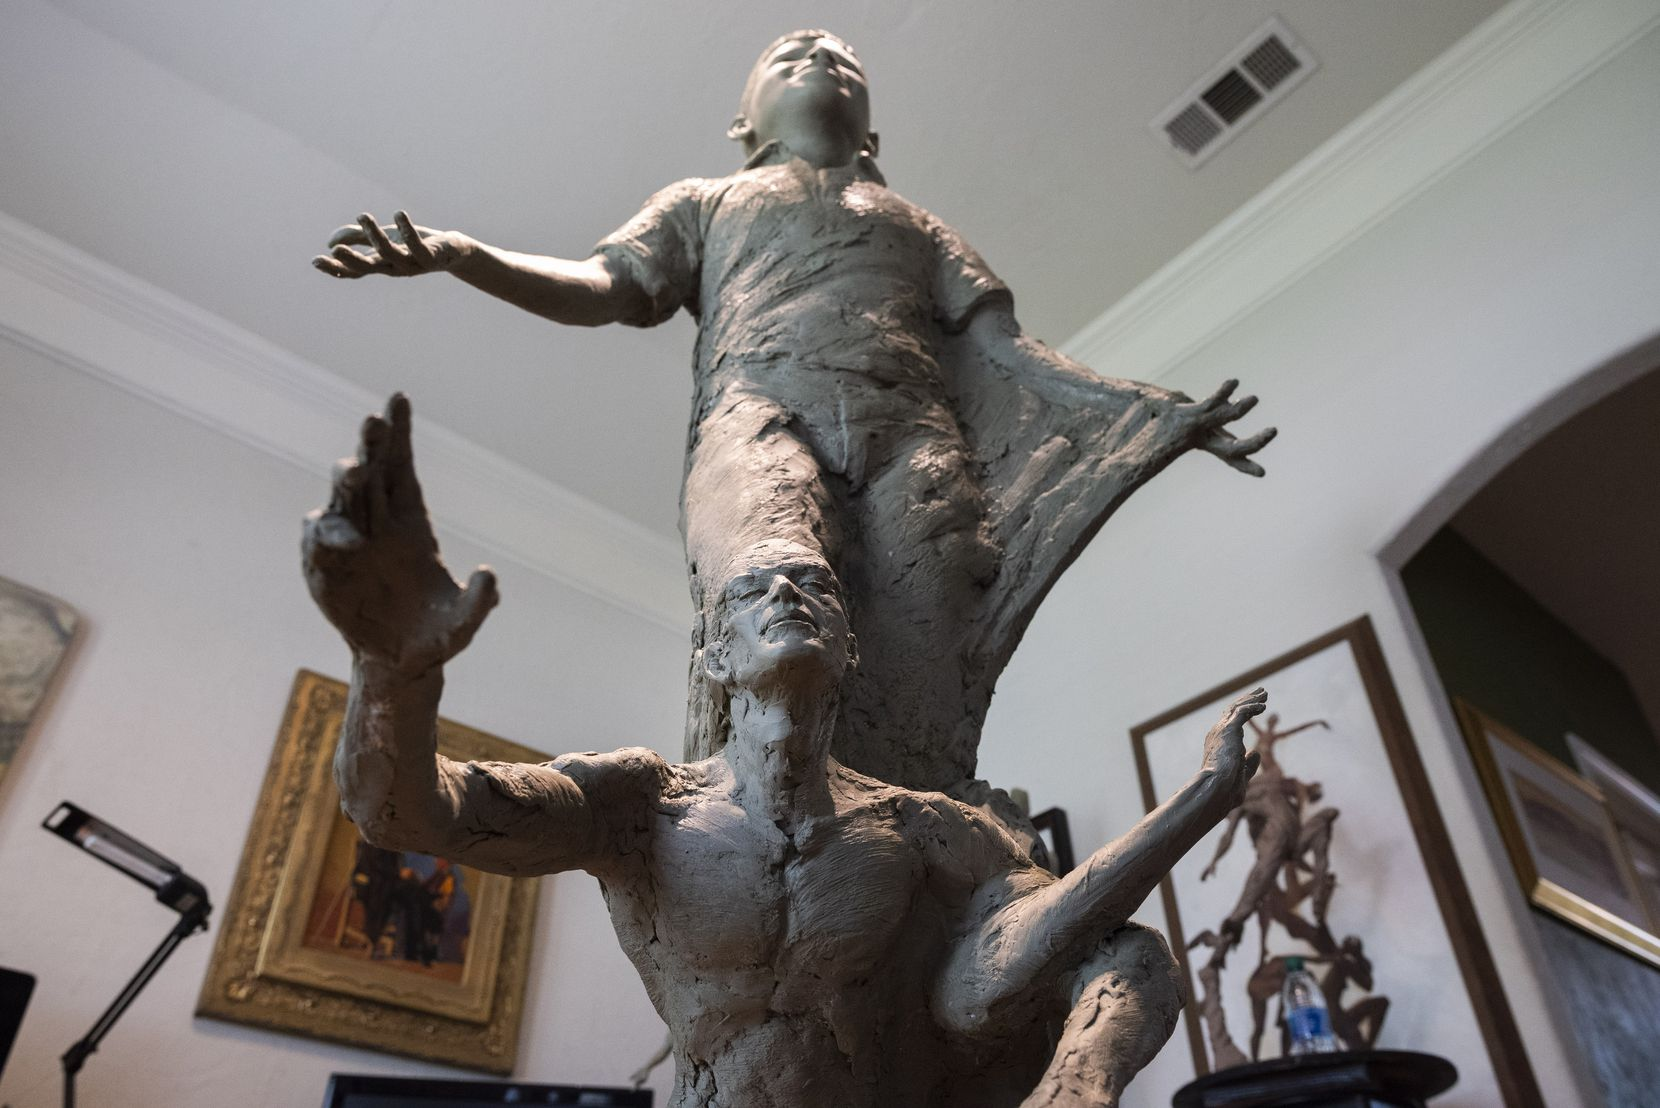 The details of fictional individuals at the base of the statue show people with interlocked arms or reaching for others in the statue depicting Santos Rodriguez, at the studio of sculptor Seth Vandable in Cedar Hill, on Tuesday, July 20, 2021.